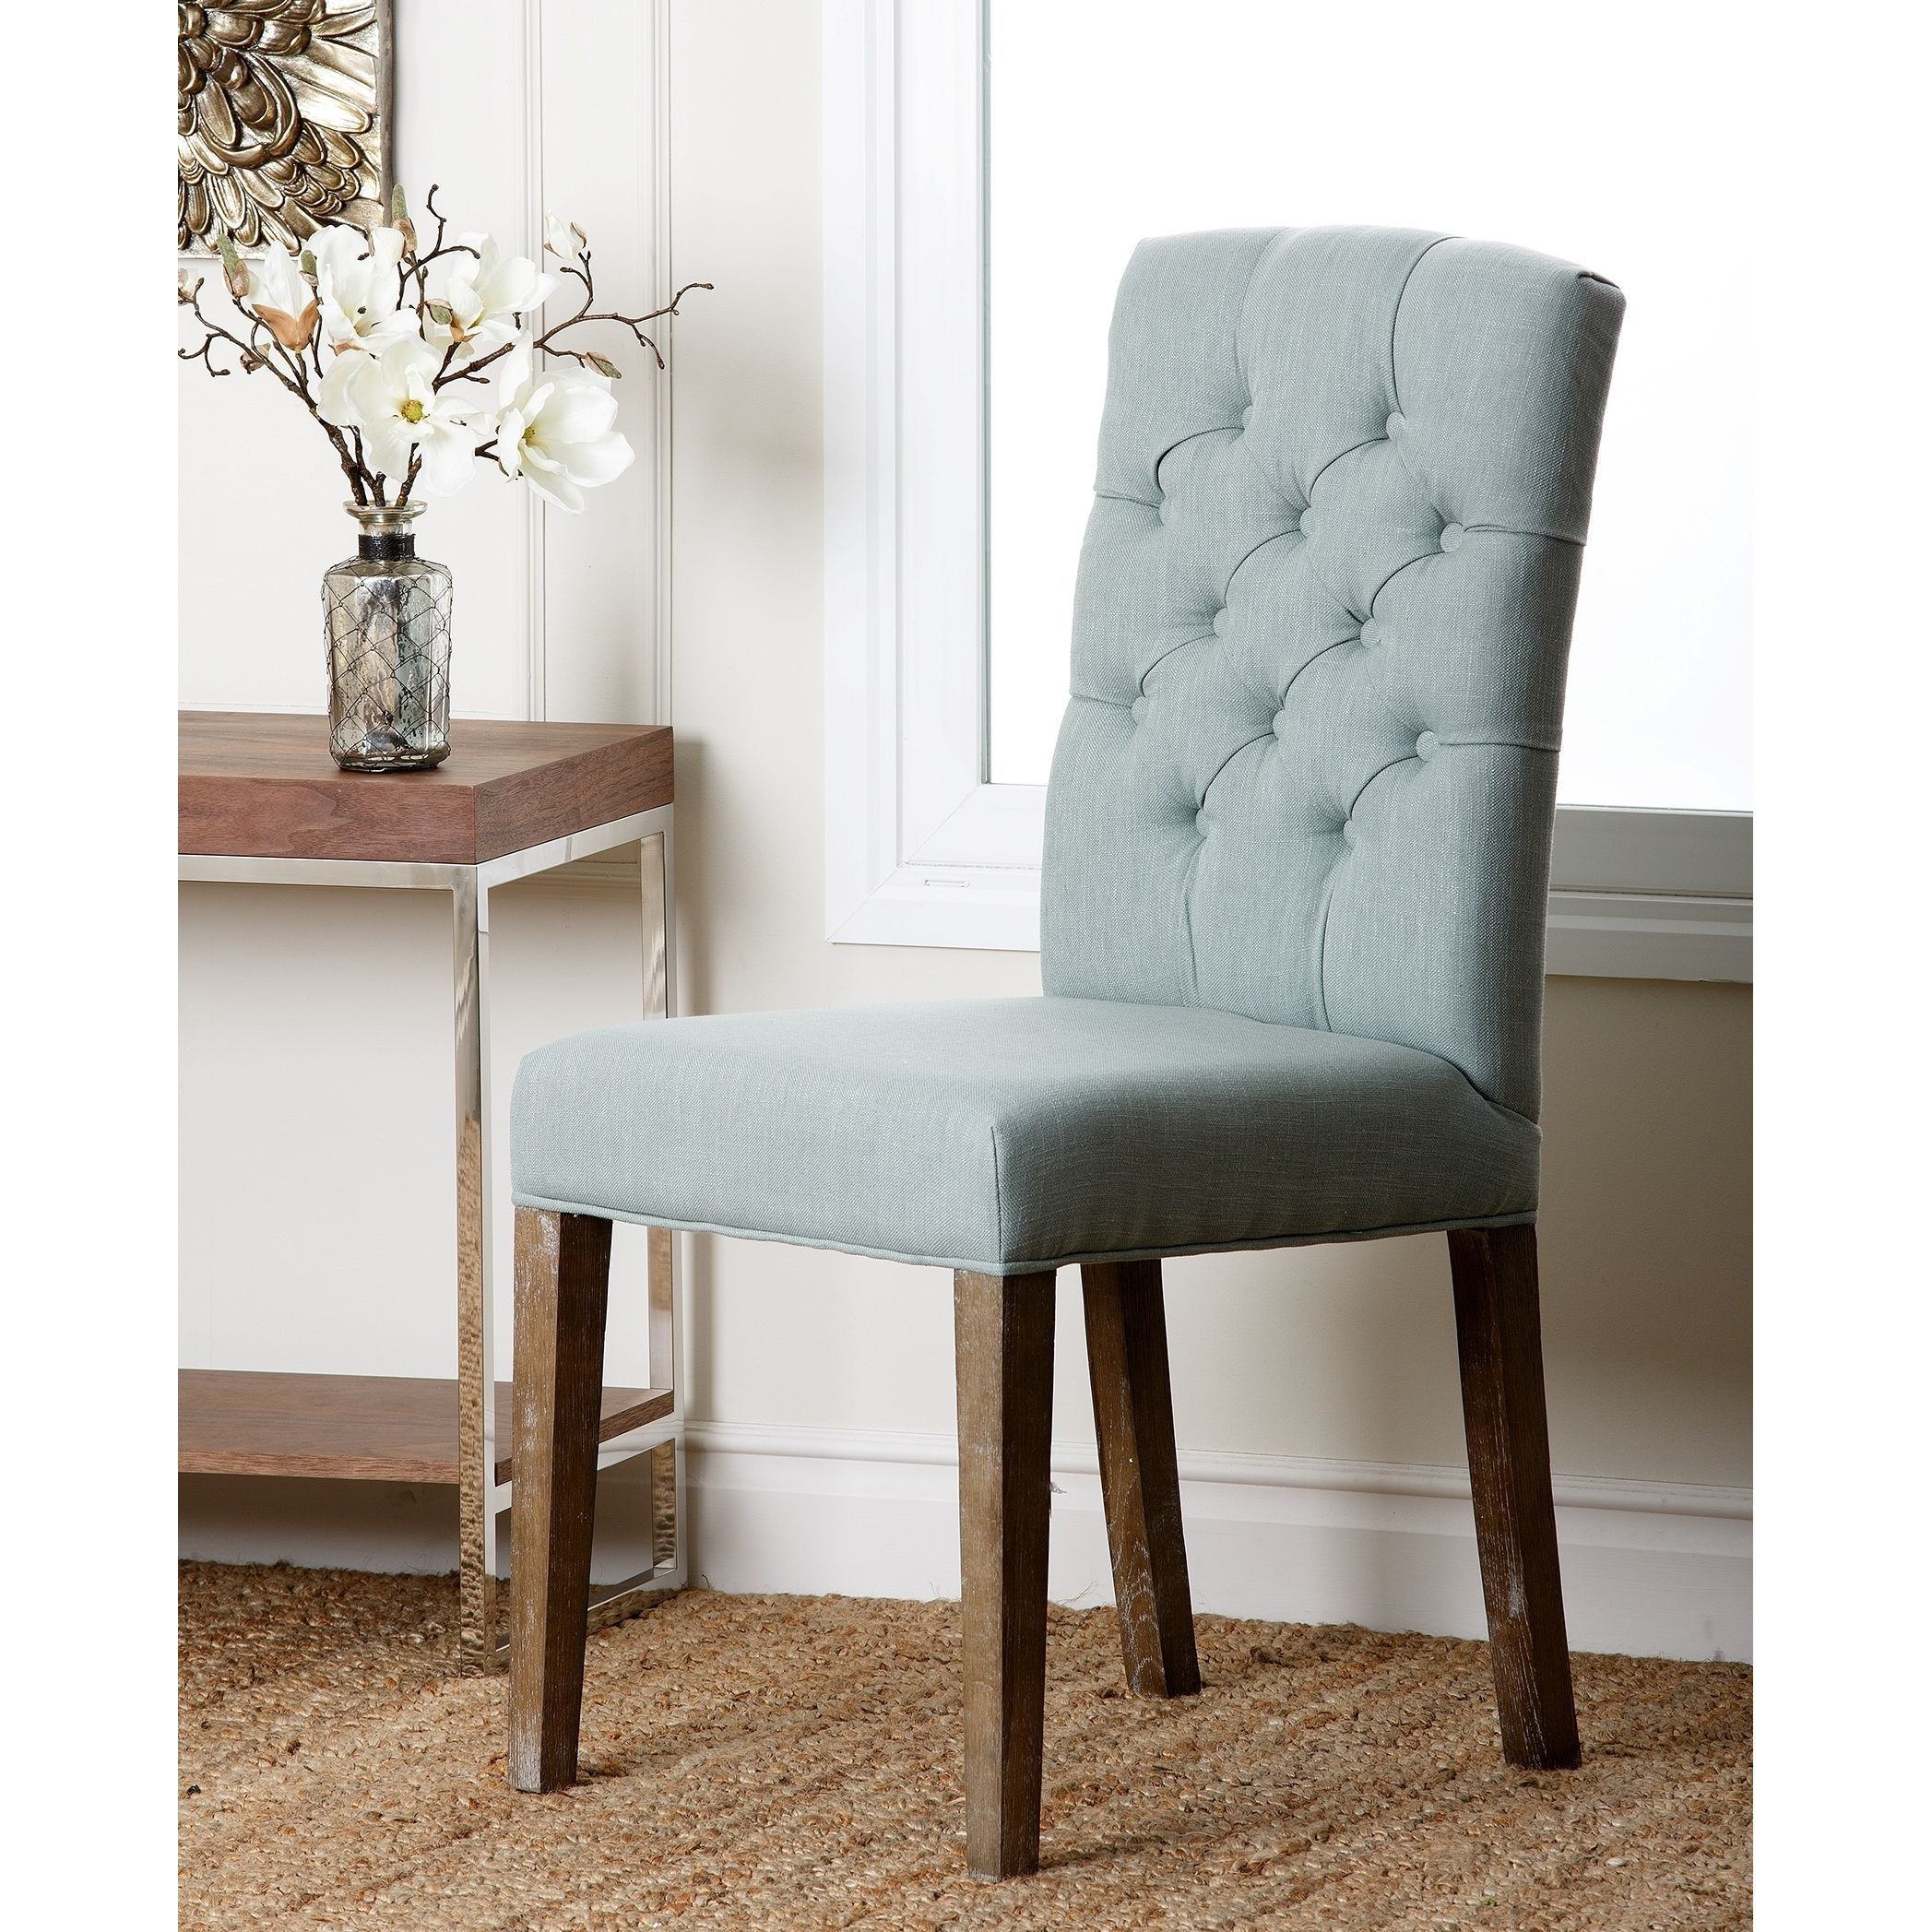 Abbyson Living Colin Seafoam Blue Linen Tufted Dining Chair Blue